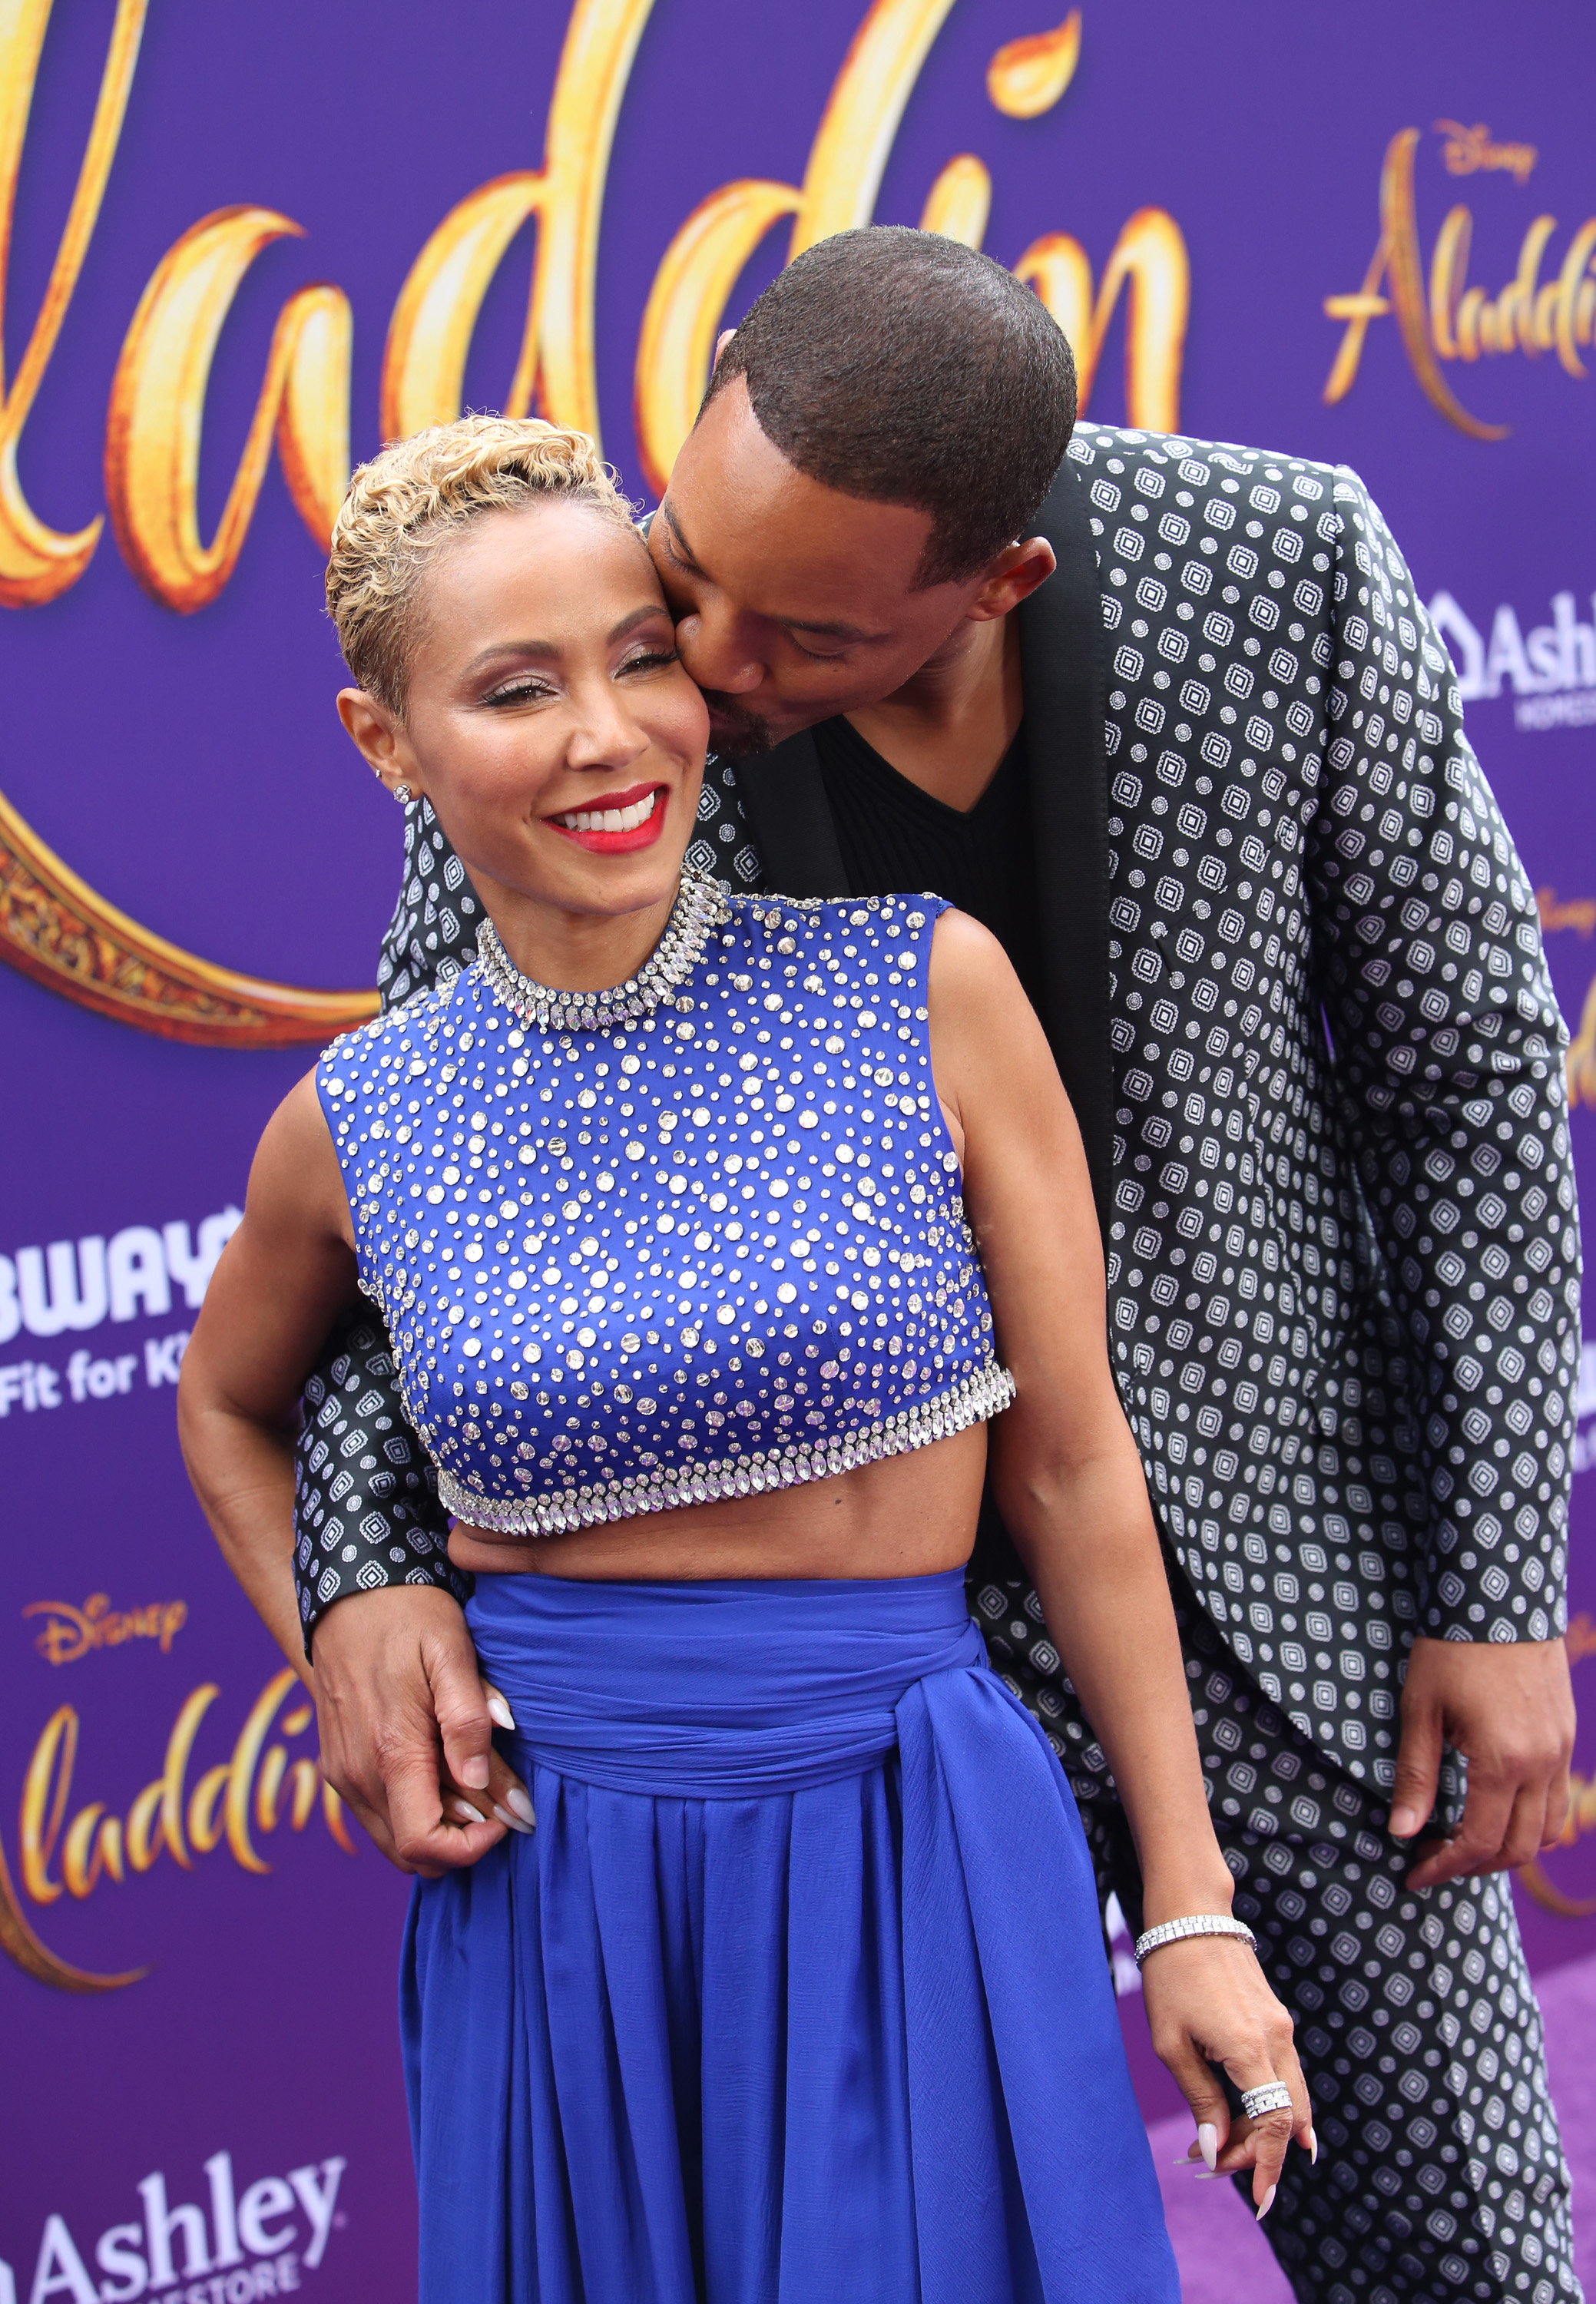 Disney Aladdin World Premiere